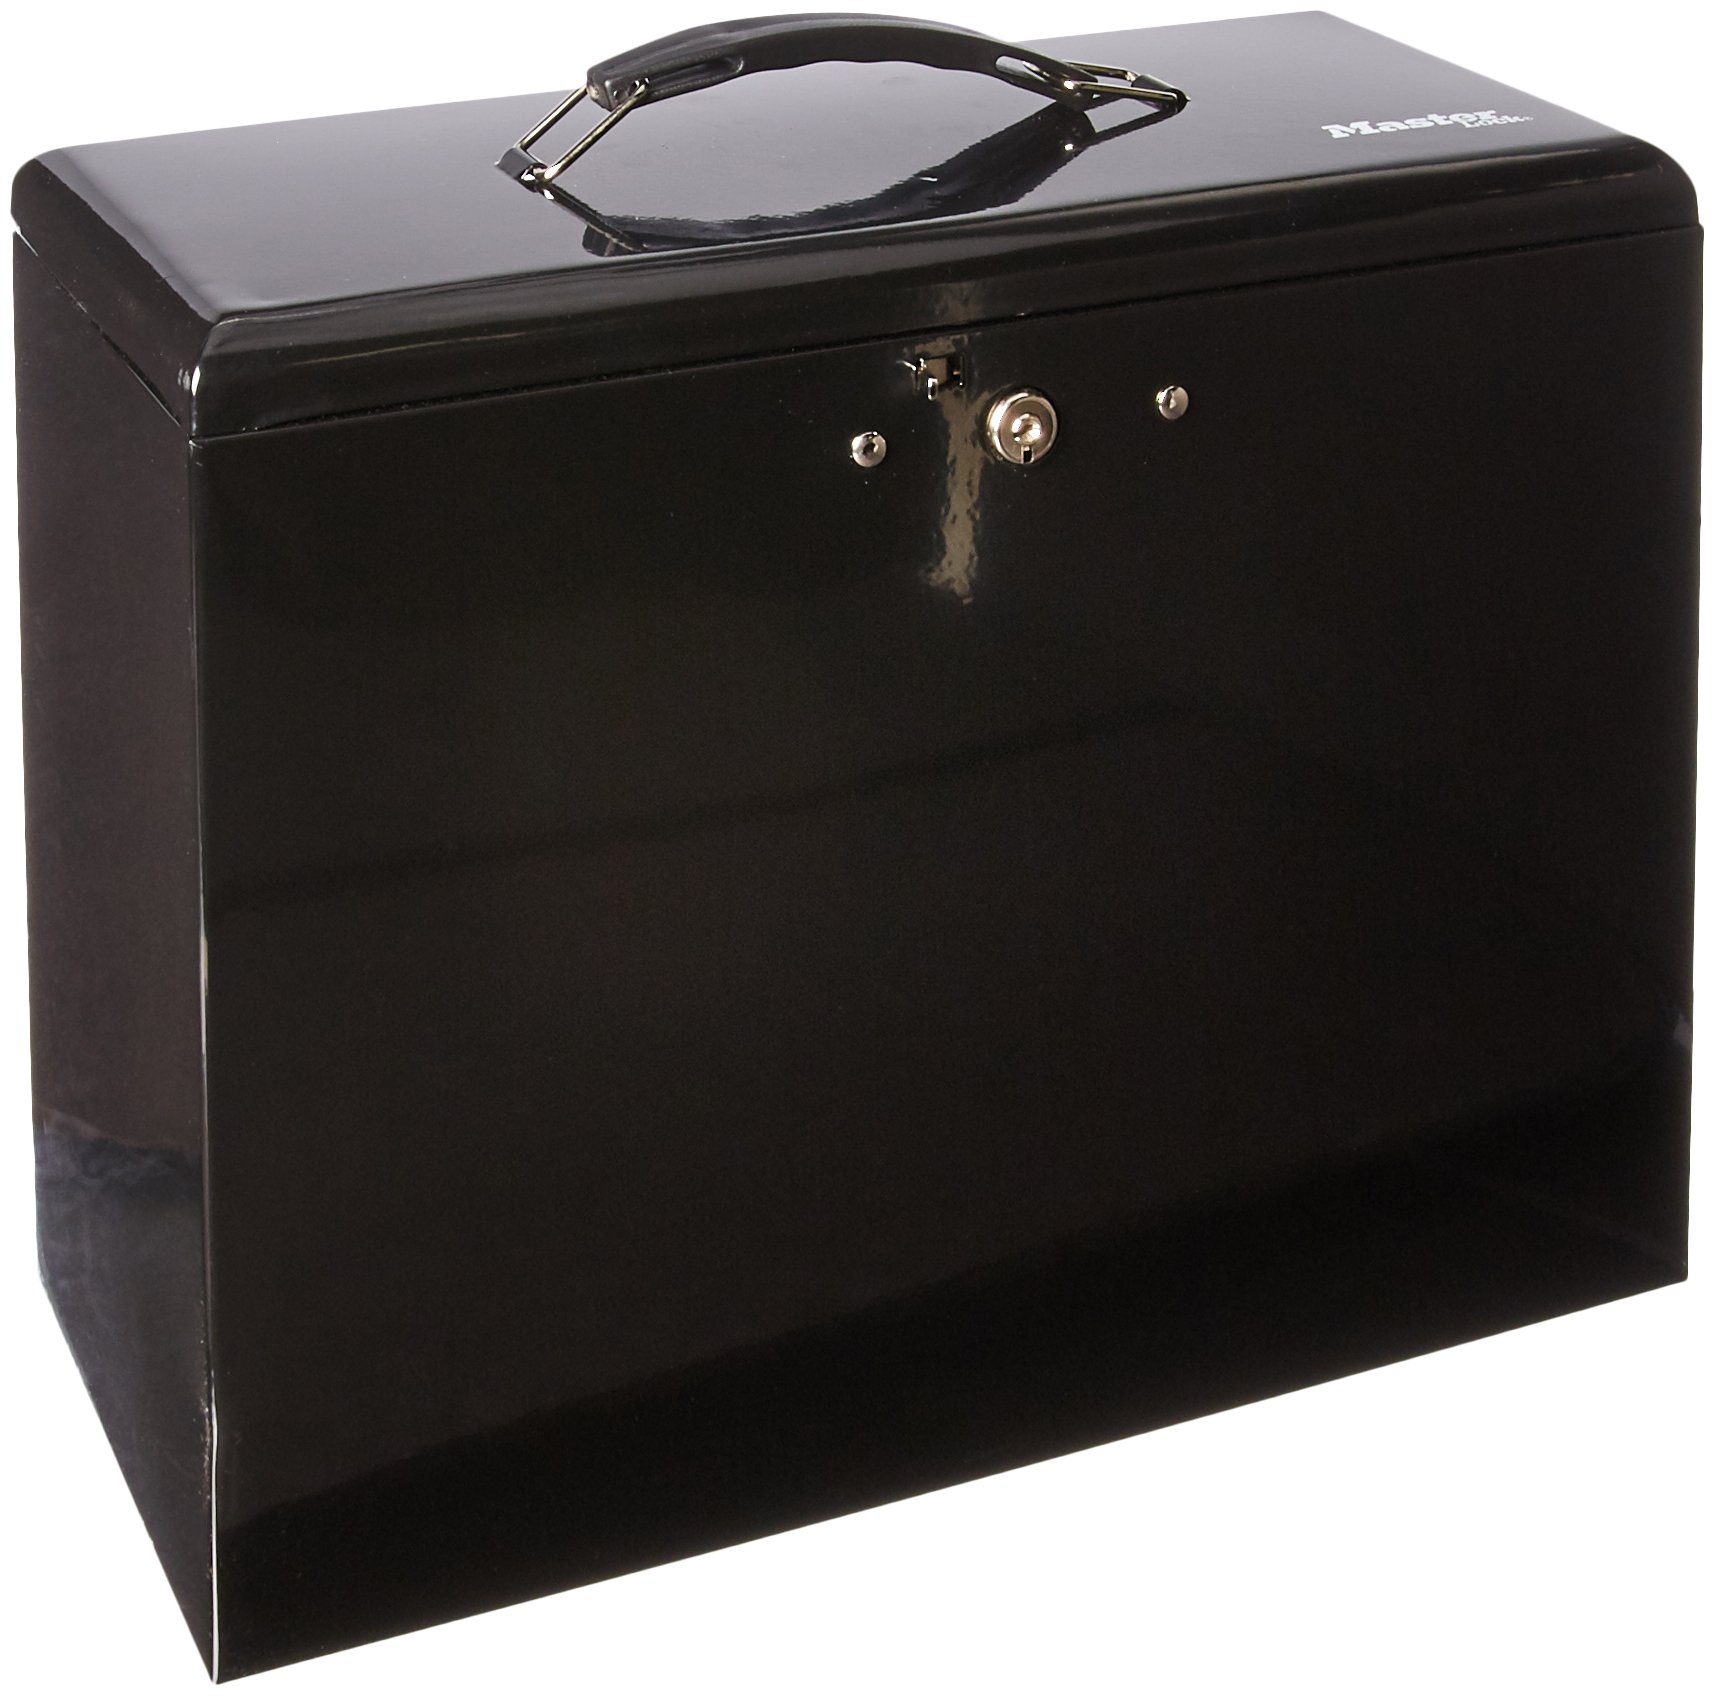 Master Lock 7148D File Box, 0.49 Cubic Feet, Black by Master Lock